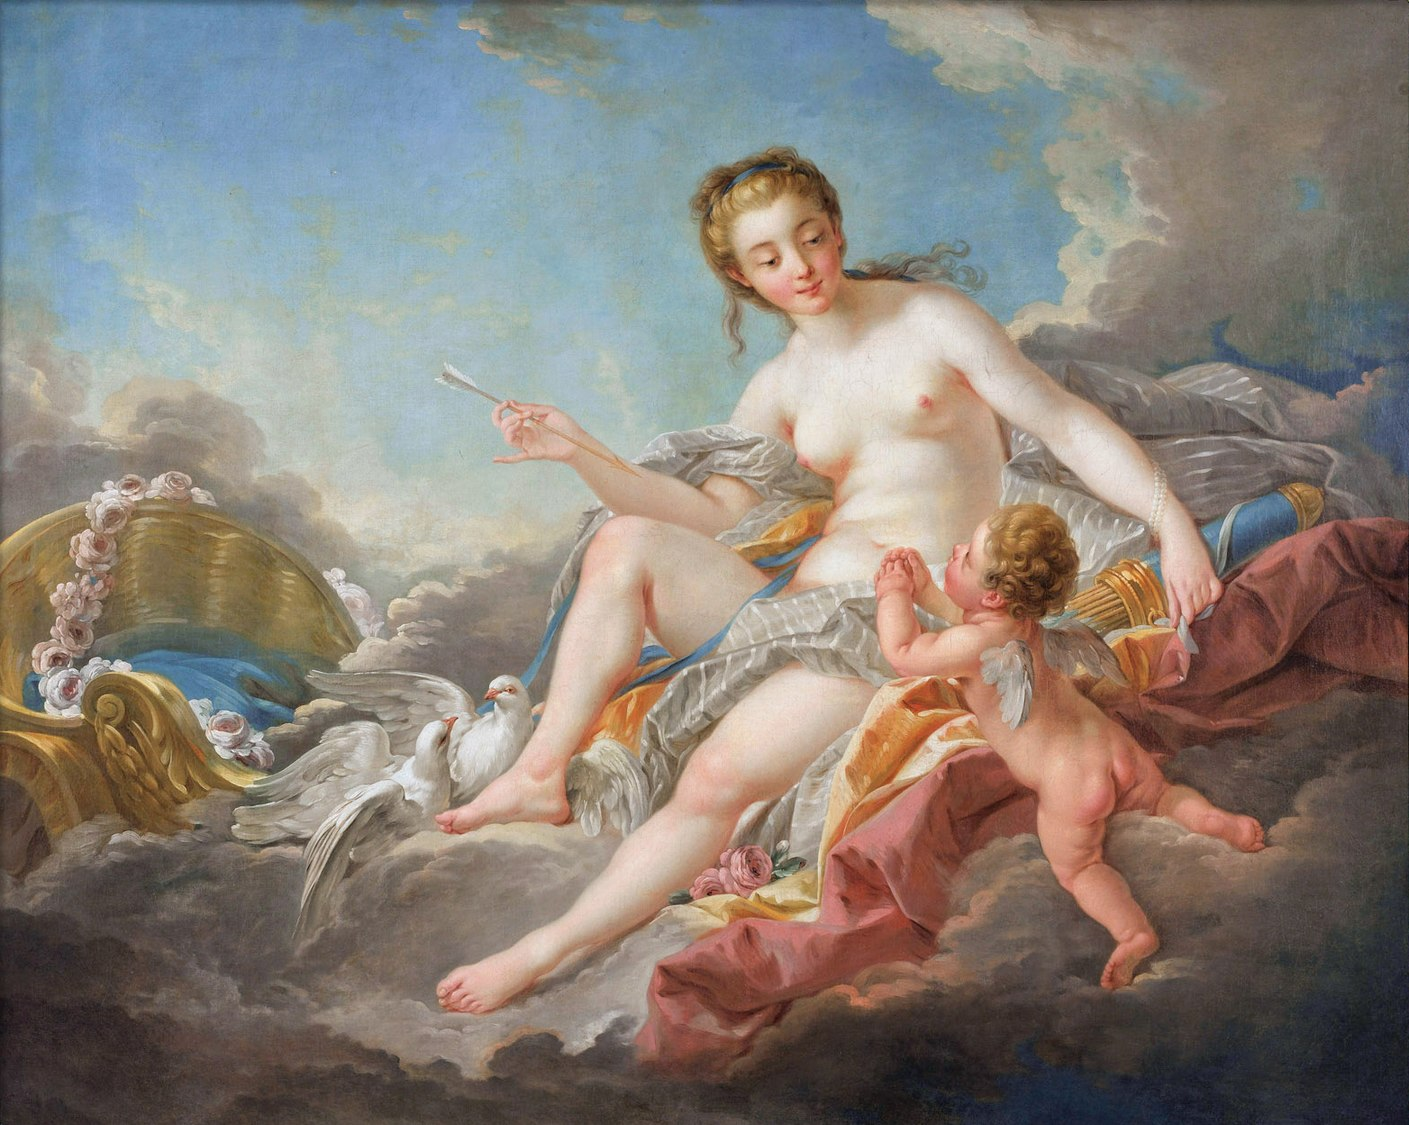 François Boucher - Cupid disarmed (painting).jpg